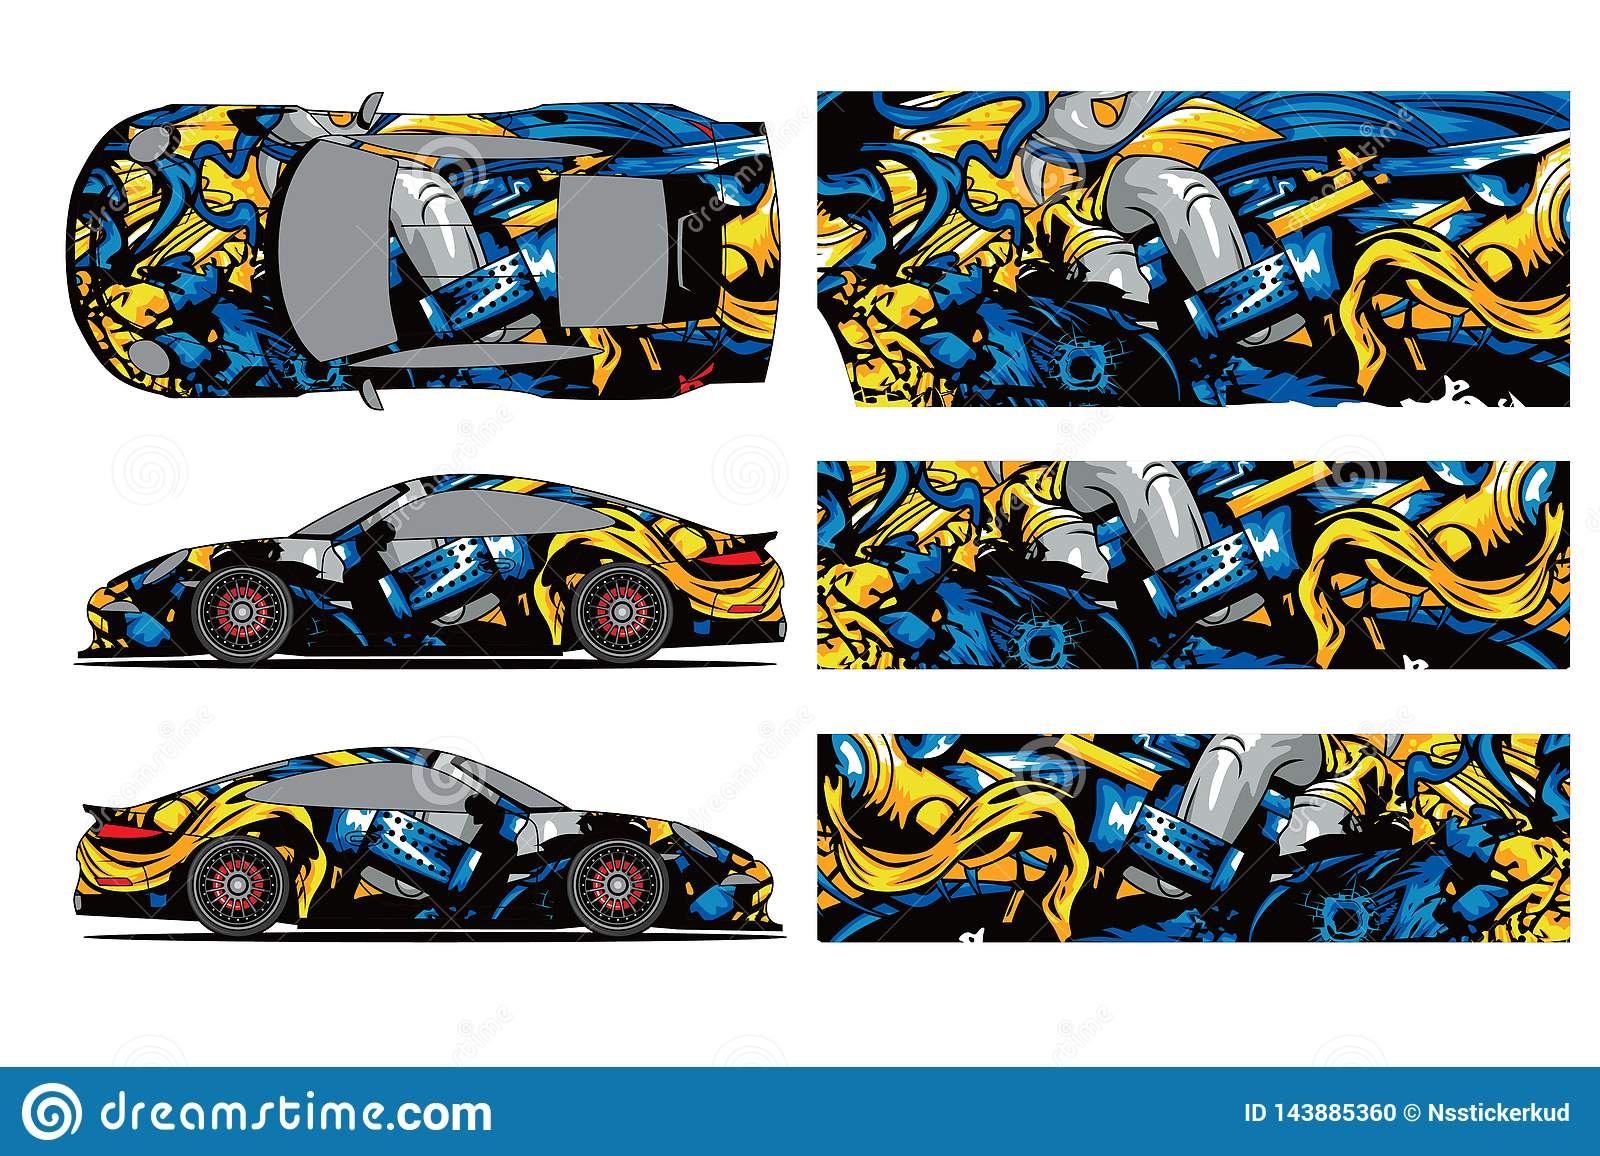 Car Decal Wrap Design Vector Graphic Abstract Stripe Racing Background Kit Designs For Wrap Vehicle Race Car Rally Stock Vector Illustration Of Design Cargo 143885360